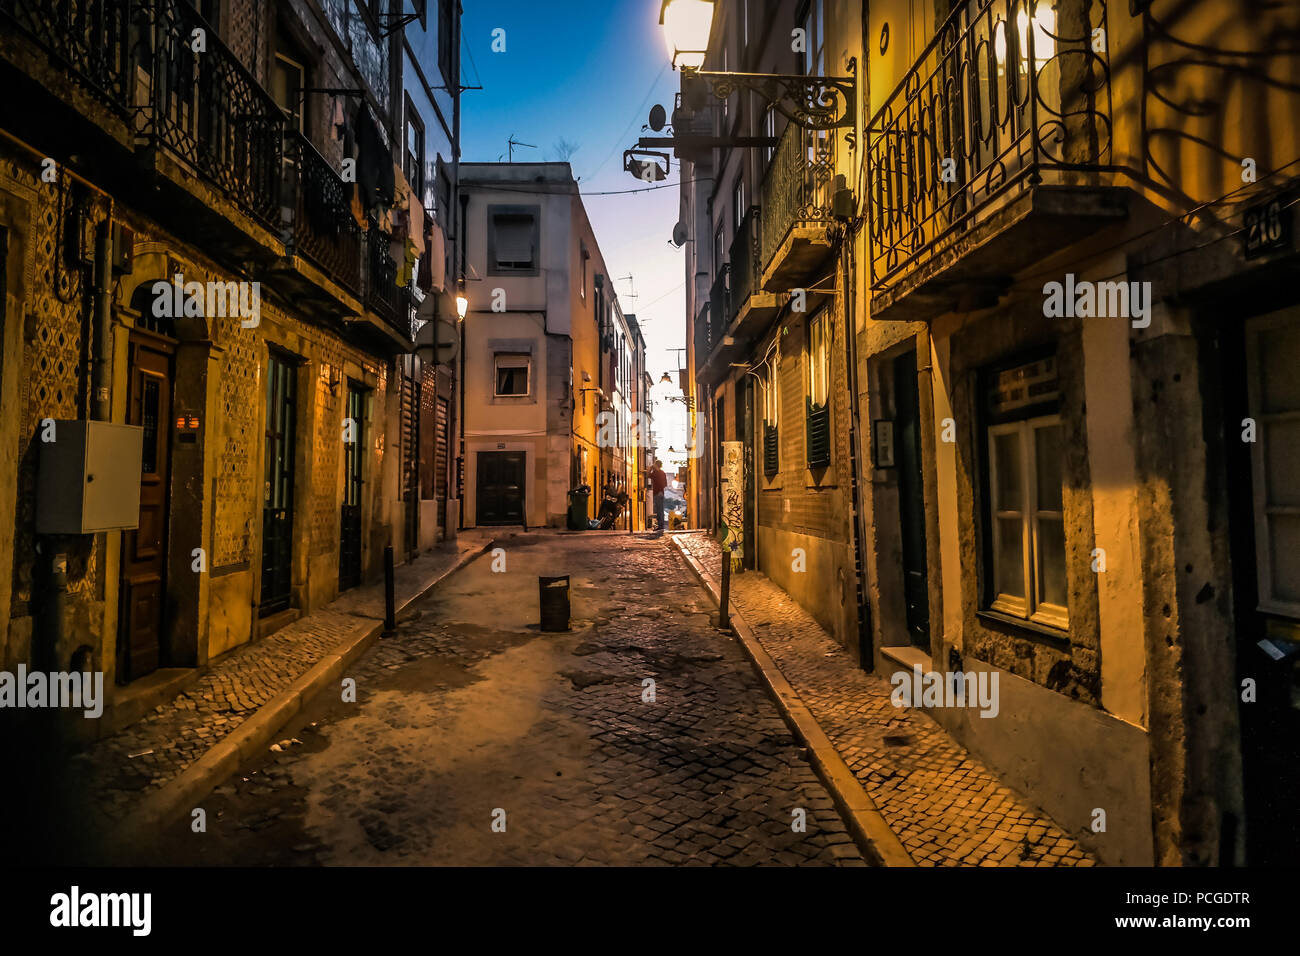 Lisbon. A street in Bairro Alto at night. - Stock Image